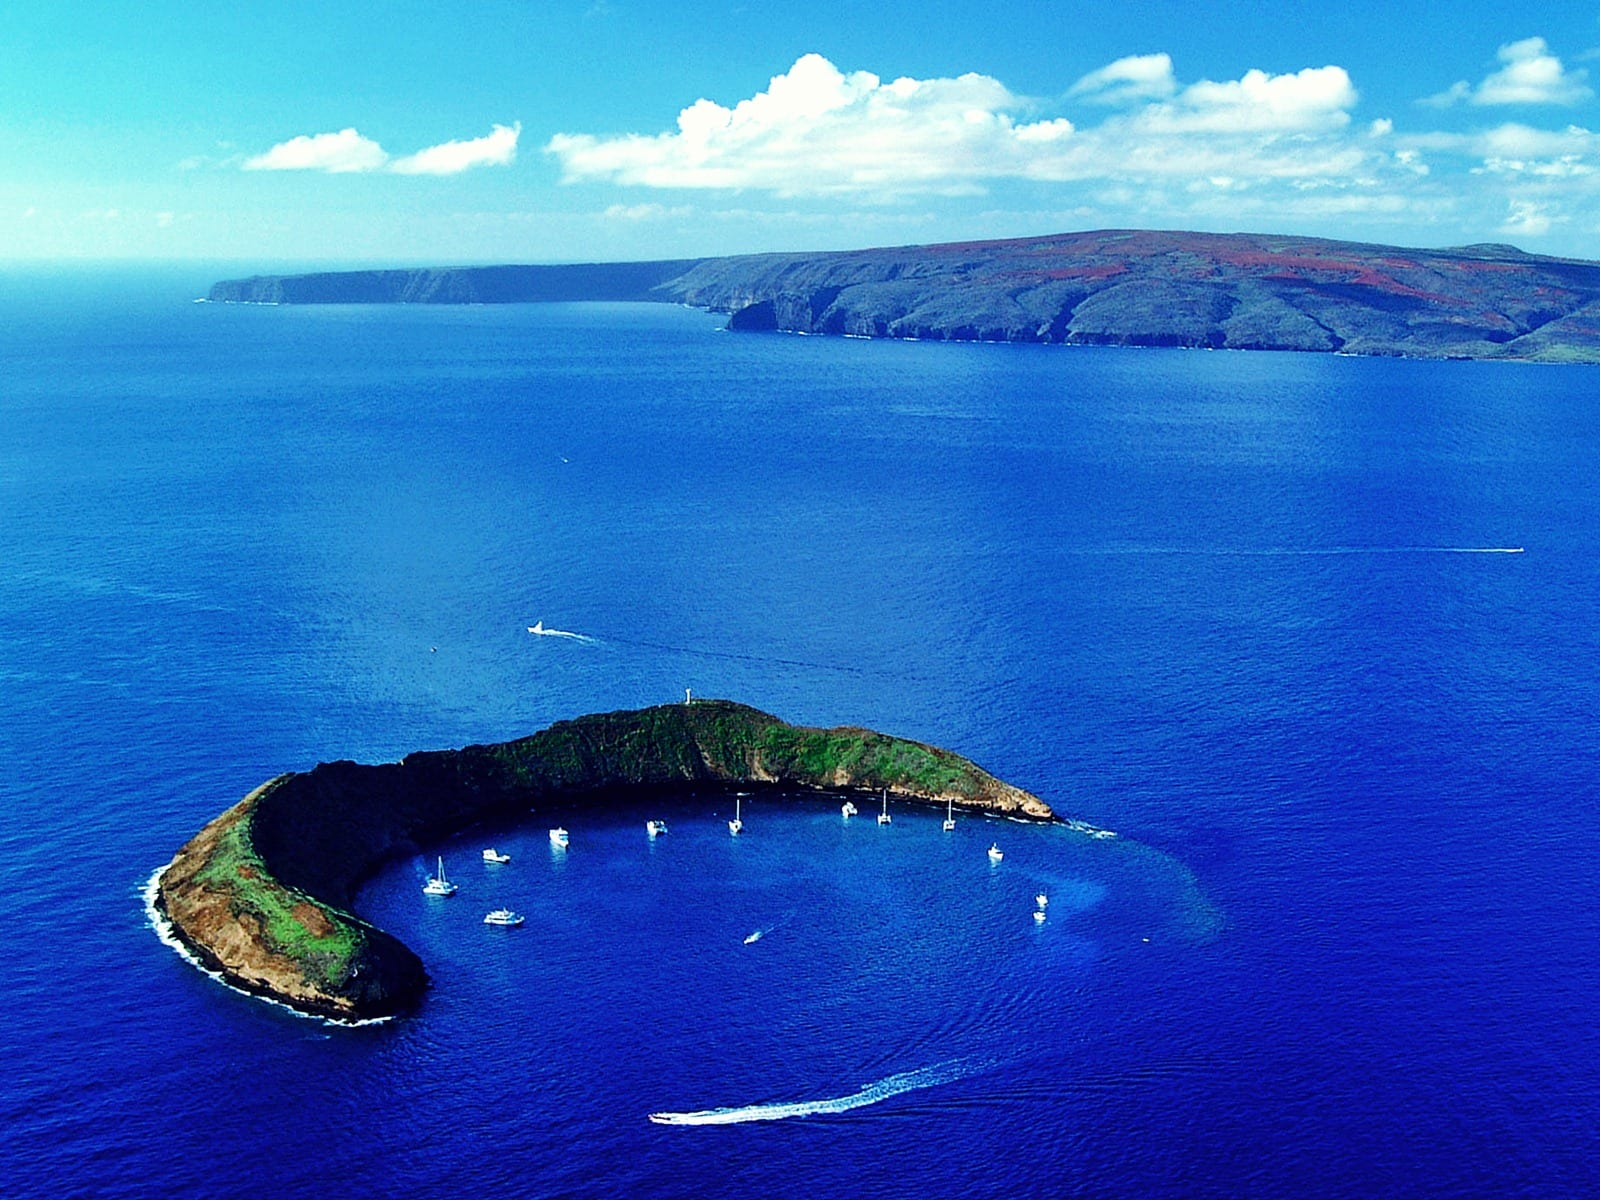 Pacific Whale Foundation – Molokini and Turtle Arches Snorkel